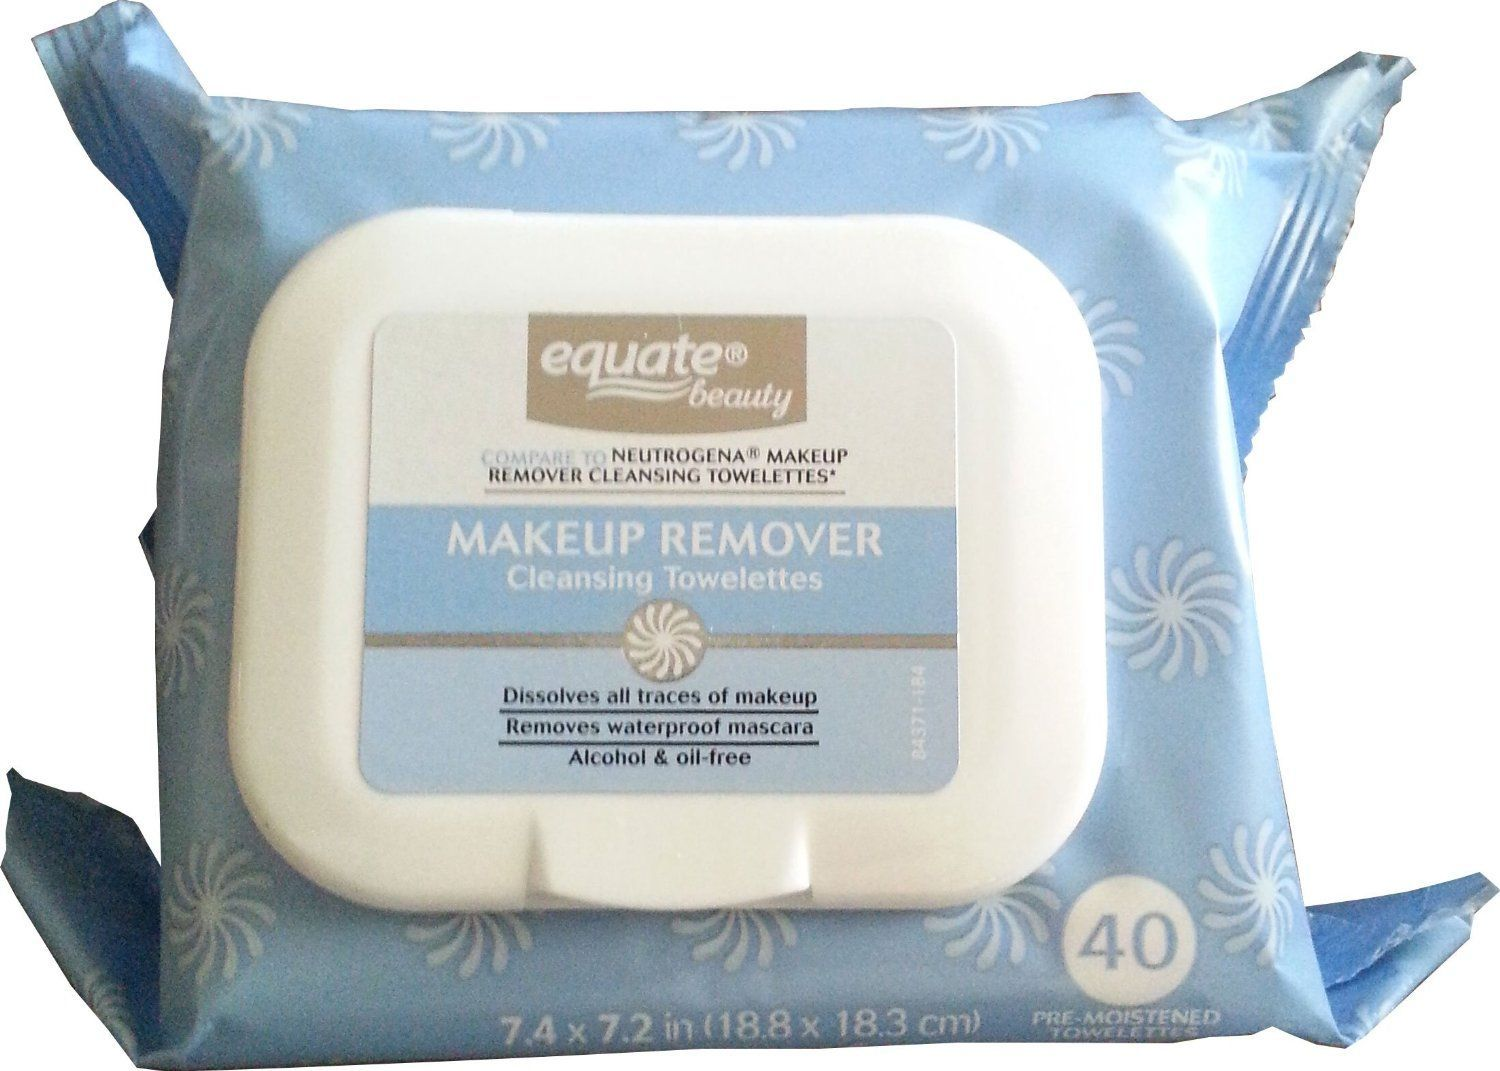 Makeup Remover Cleansing Towelettes (Compare to Neutrogena)